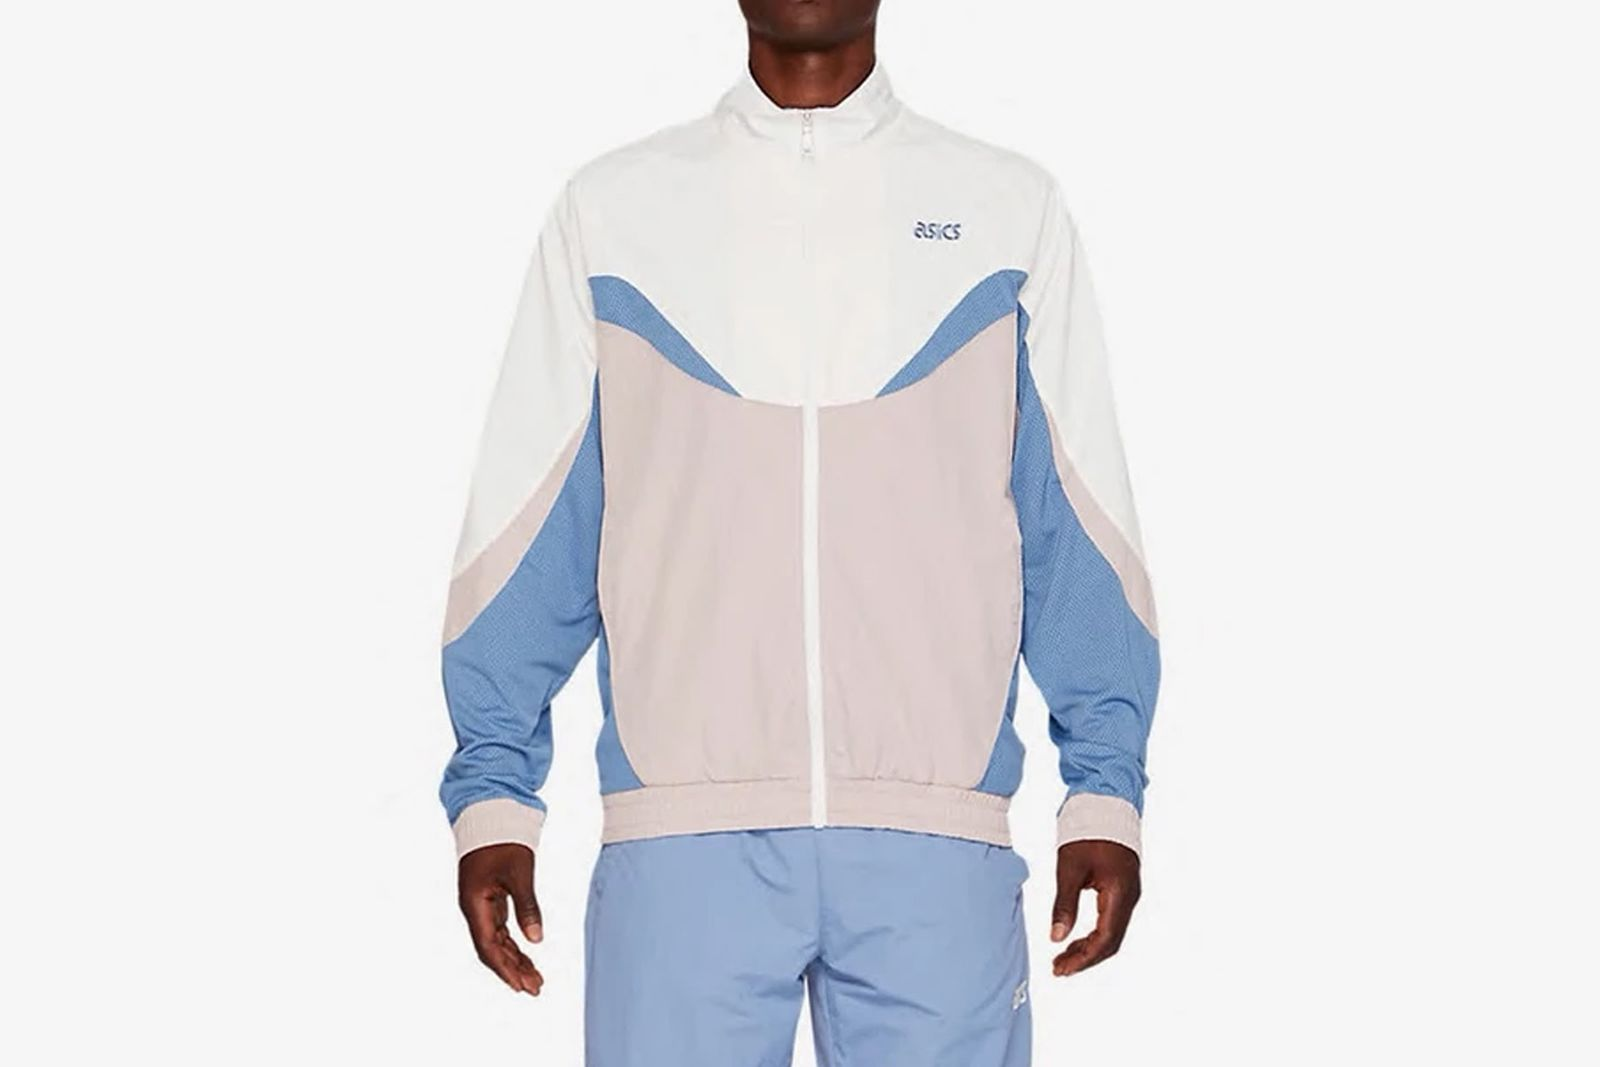 affordable-tracksuits-shopping-guide-01